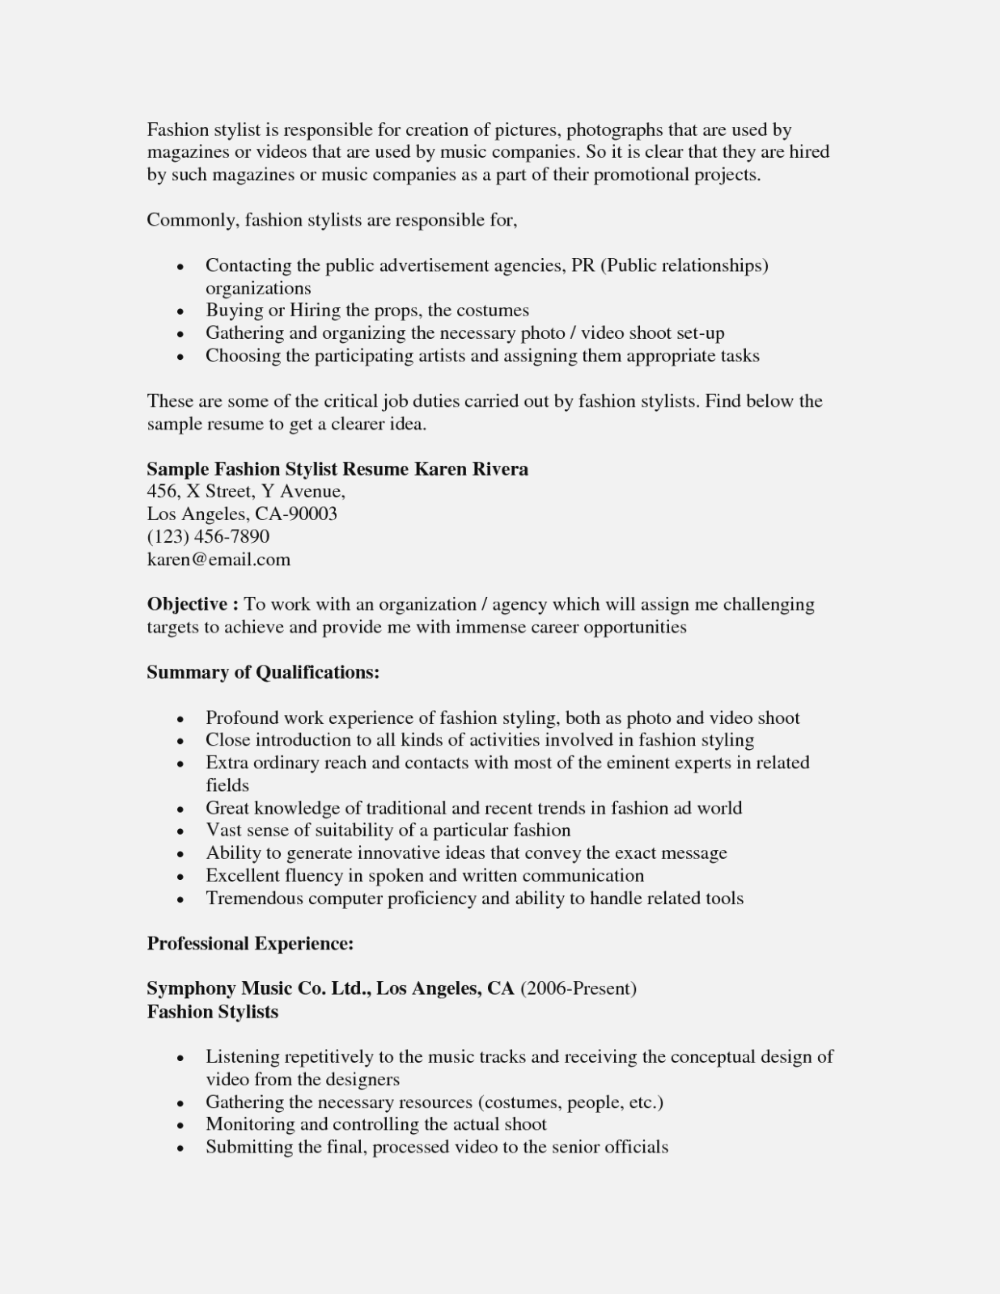 Hair Stylist Resume Objective Examples Resume Skills 2020 In 2020